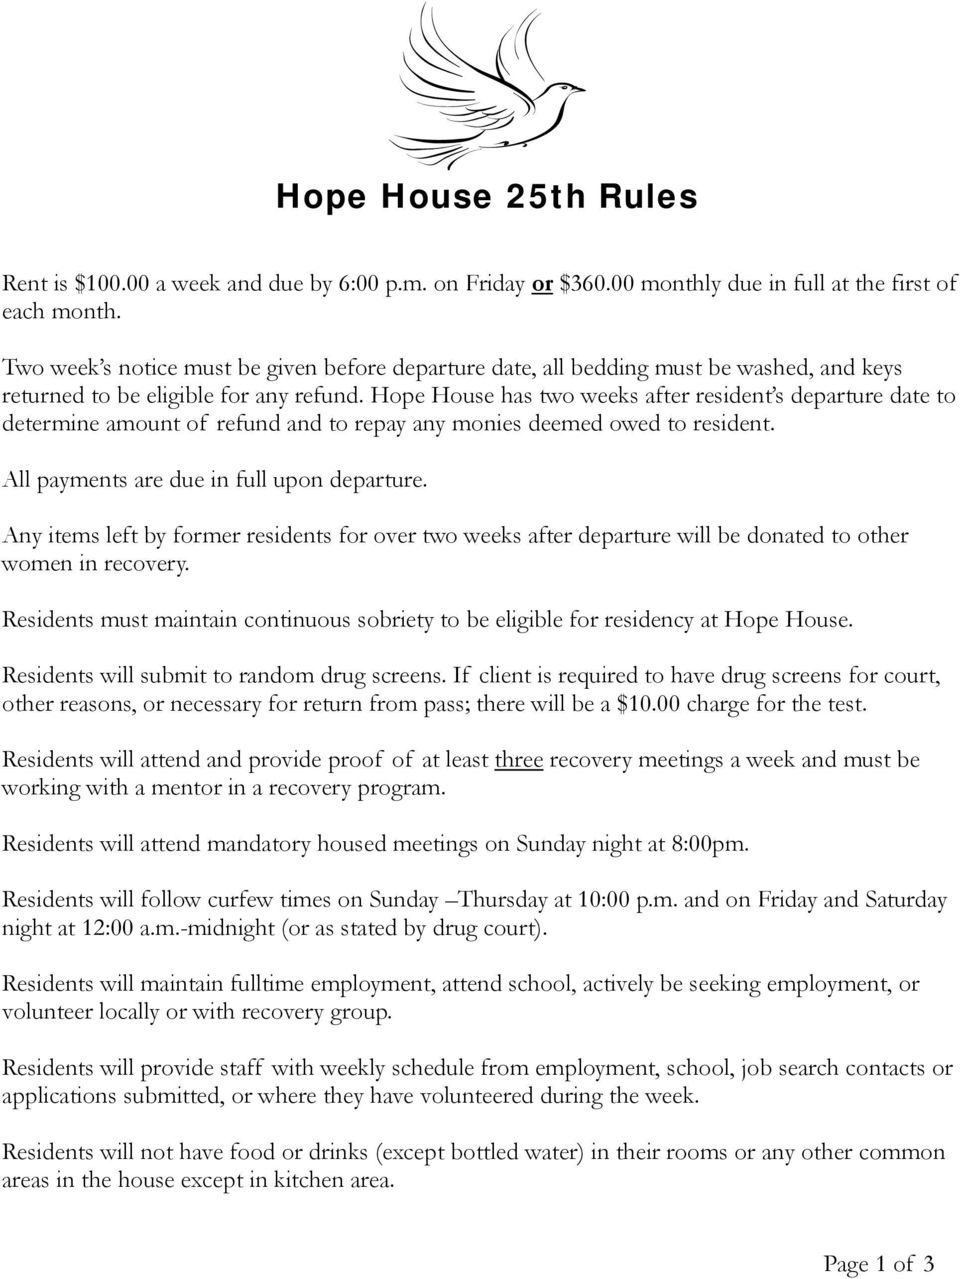 Hope House has two weeks after resident s departure date to determine amount of refund and to repay any monies deemed owed to resident. All payments are due in full upon departure.